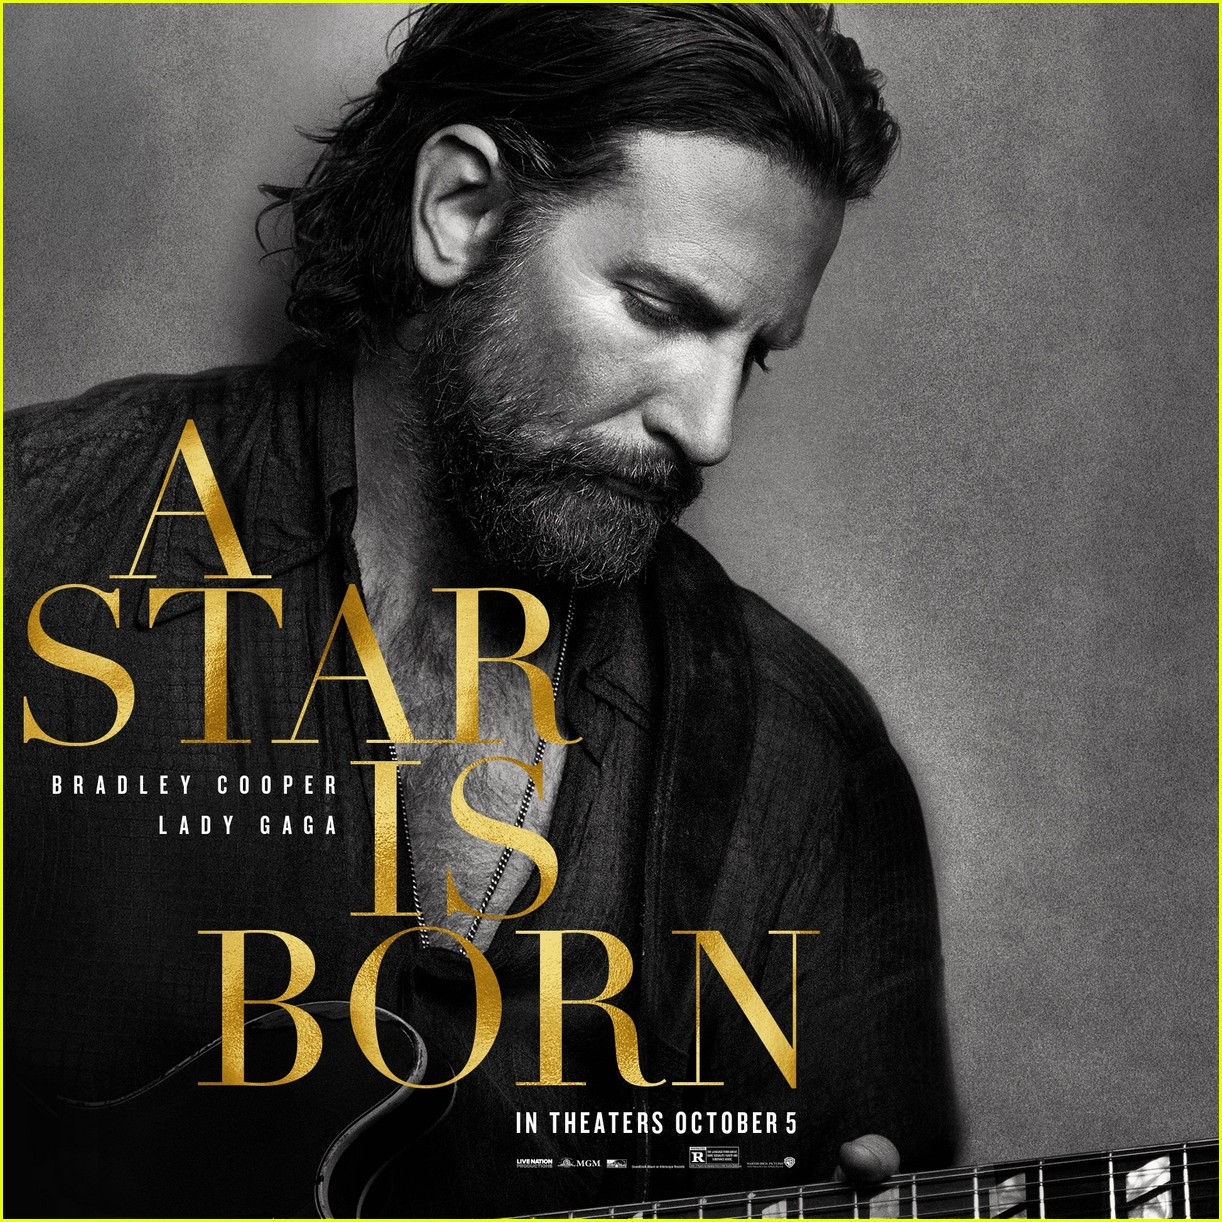 a star is born first look posters 034096241